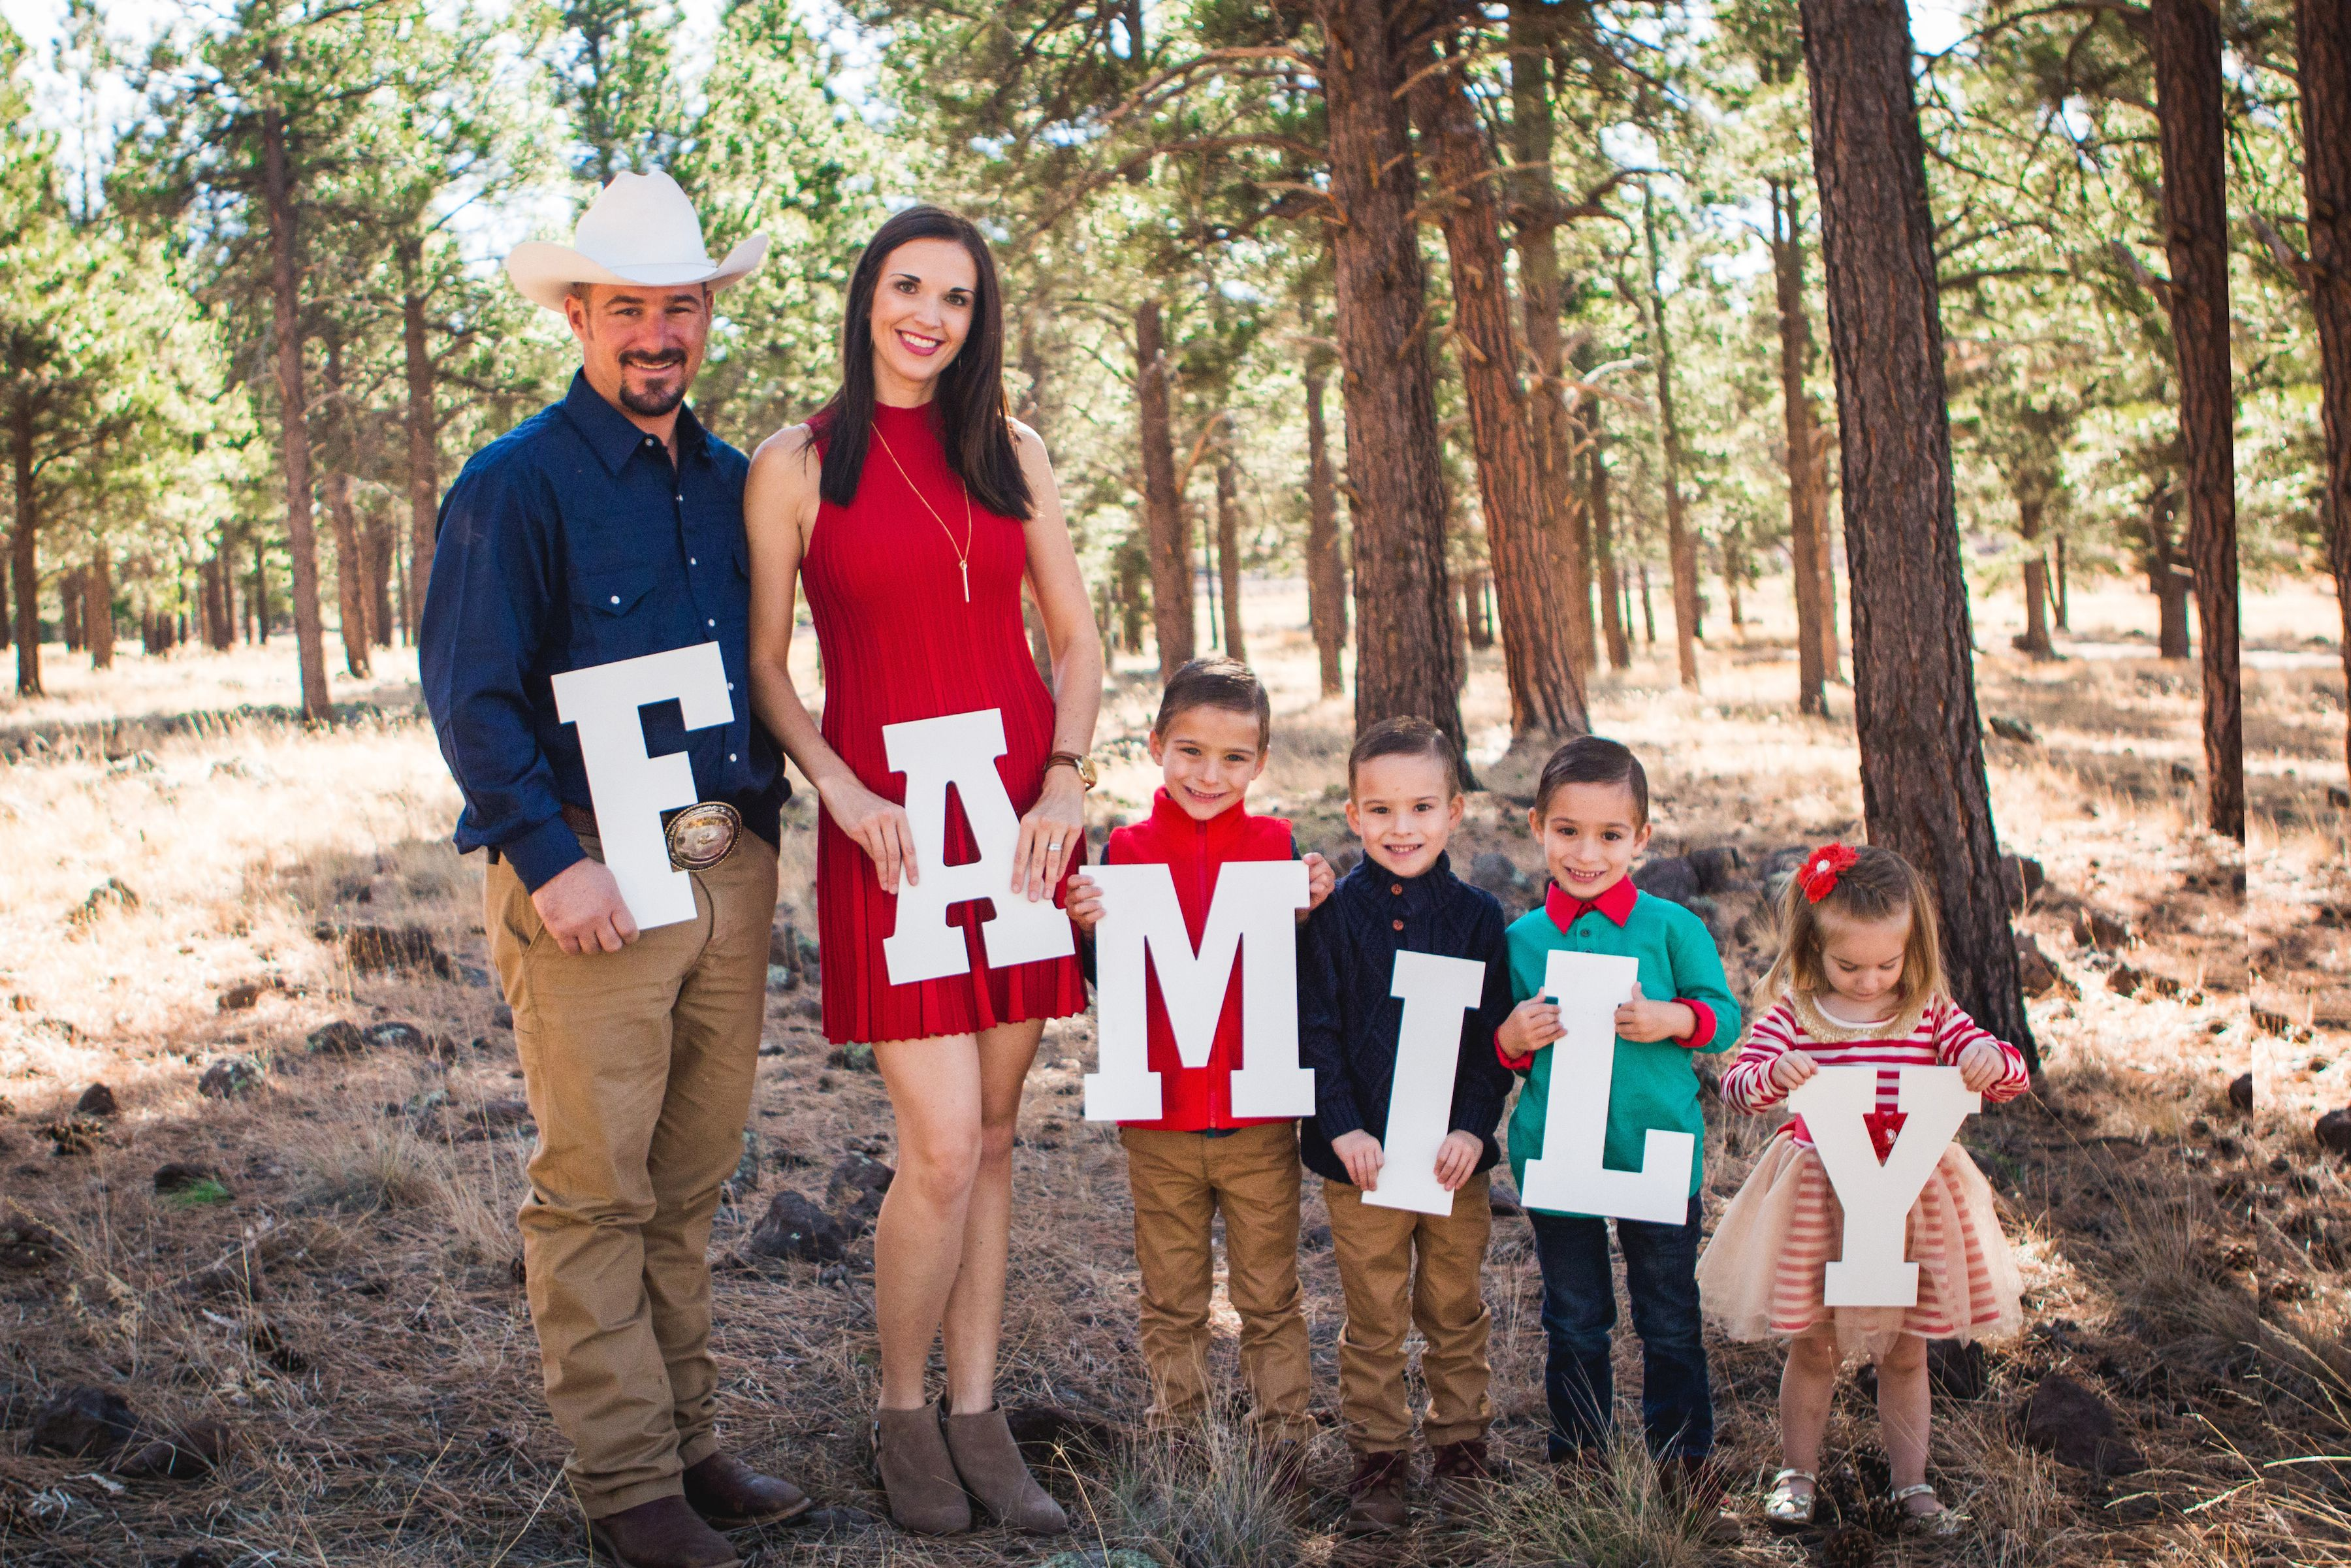 Large Family Photo Ideas Family Holiday Photos Red Gold Navy Green Family Christmas Pict Family Photos What To Wear Family Photo Colors Cute Family Pictures